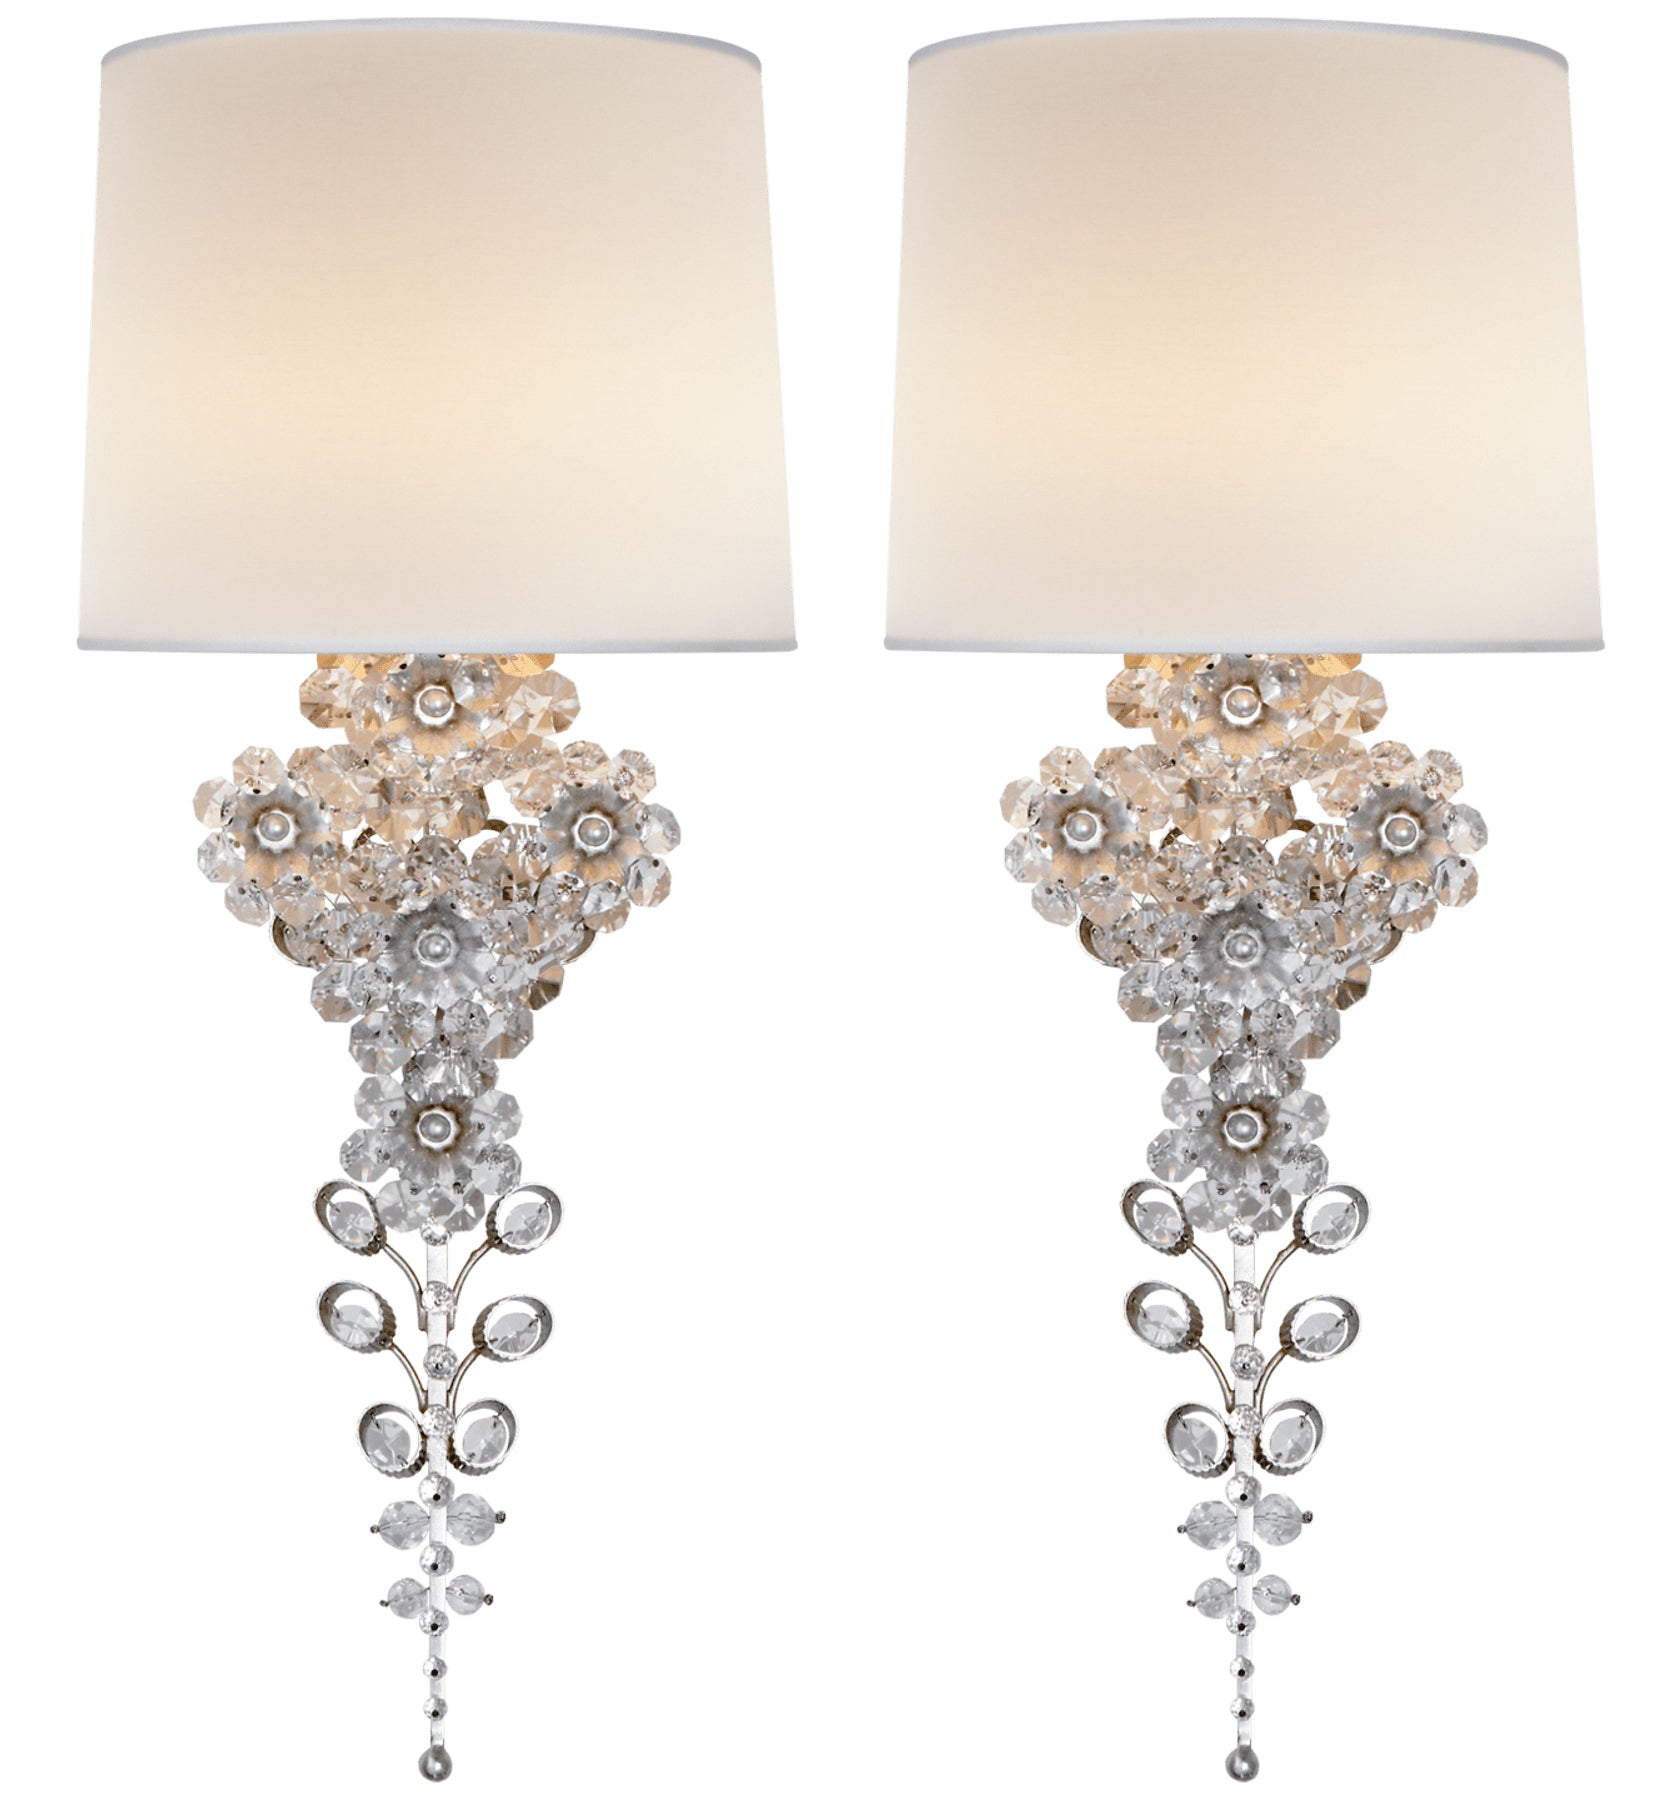 Pair of Floral Crystal Sconces